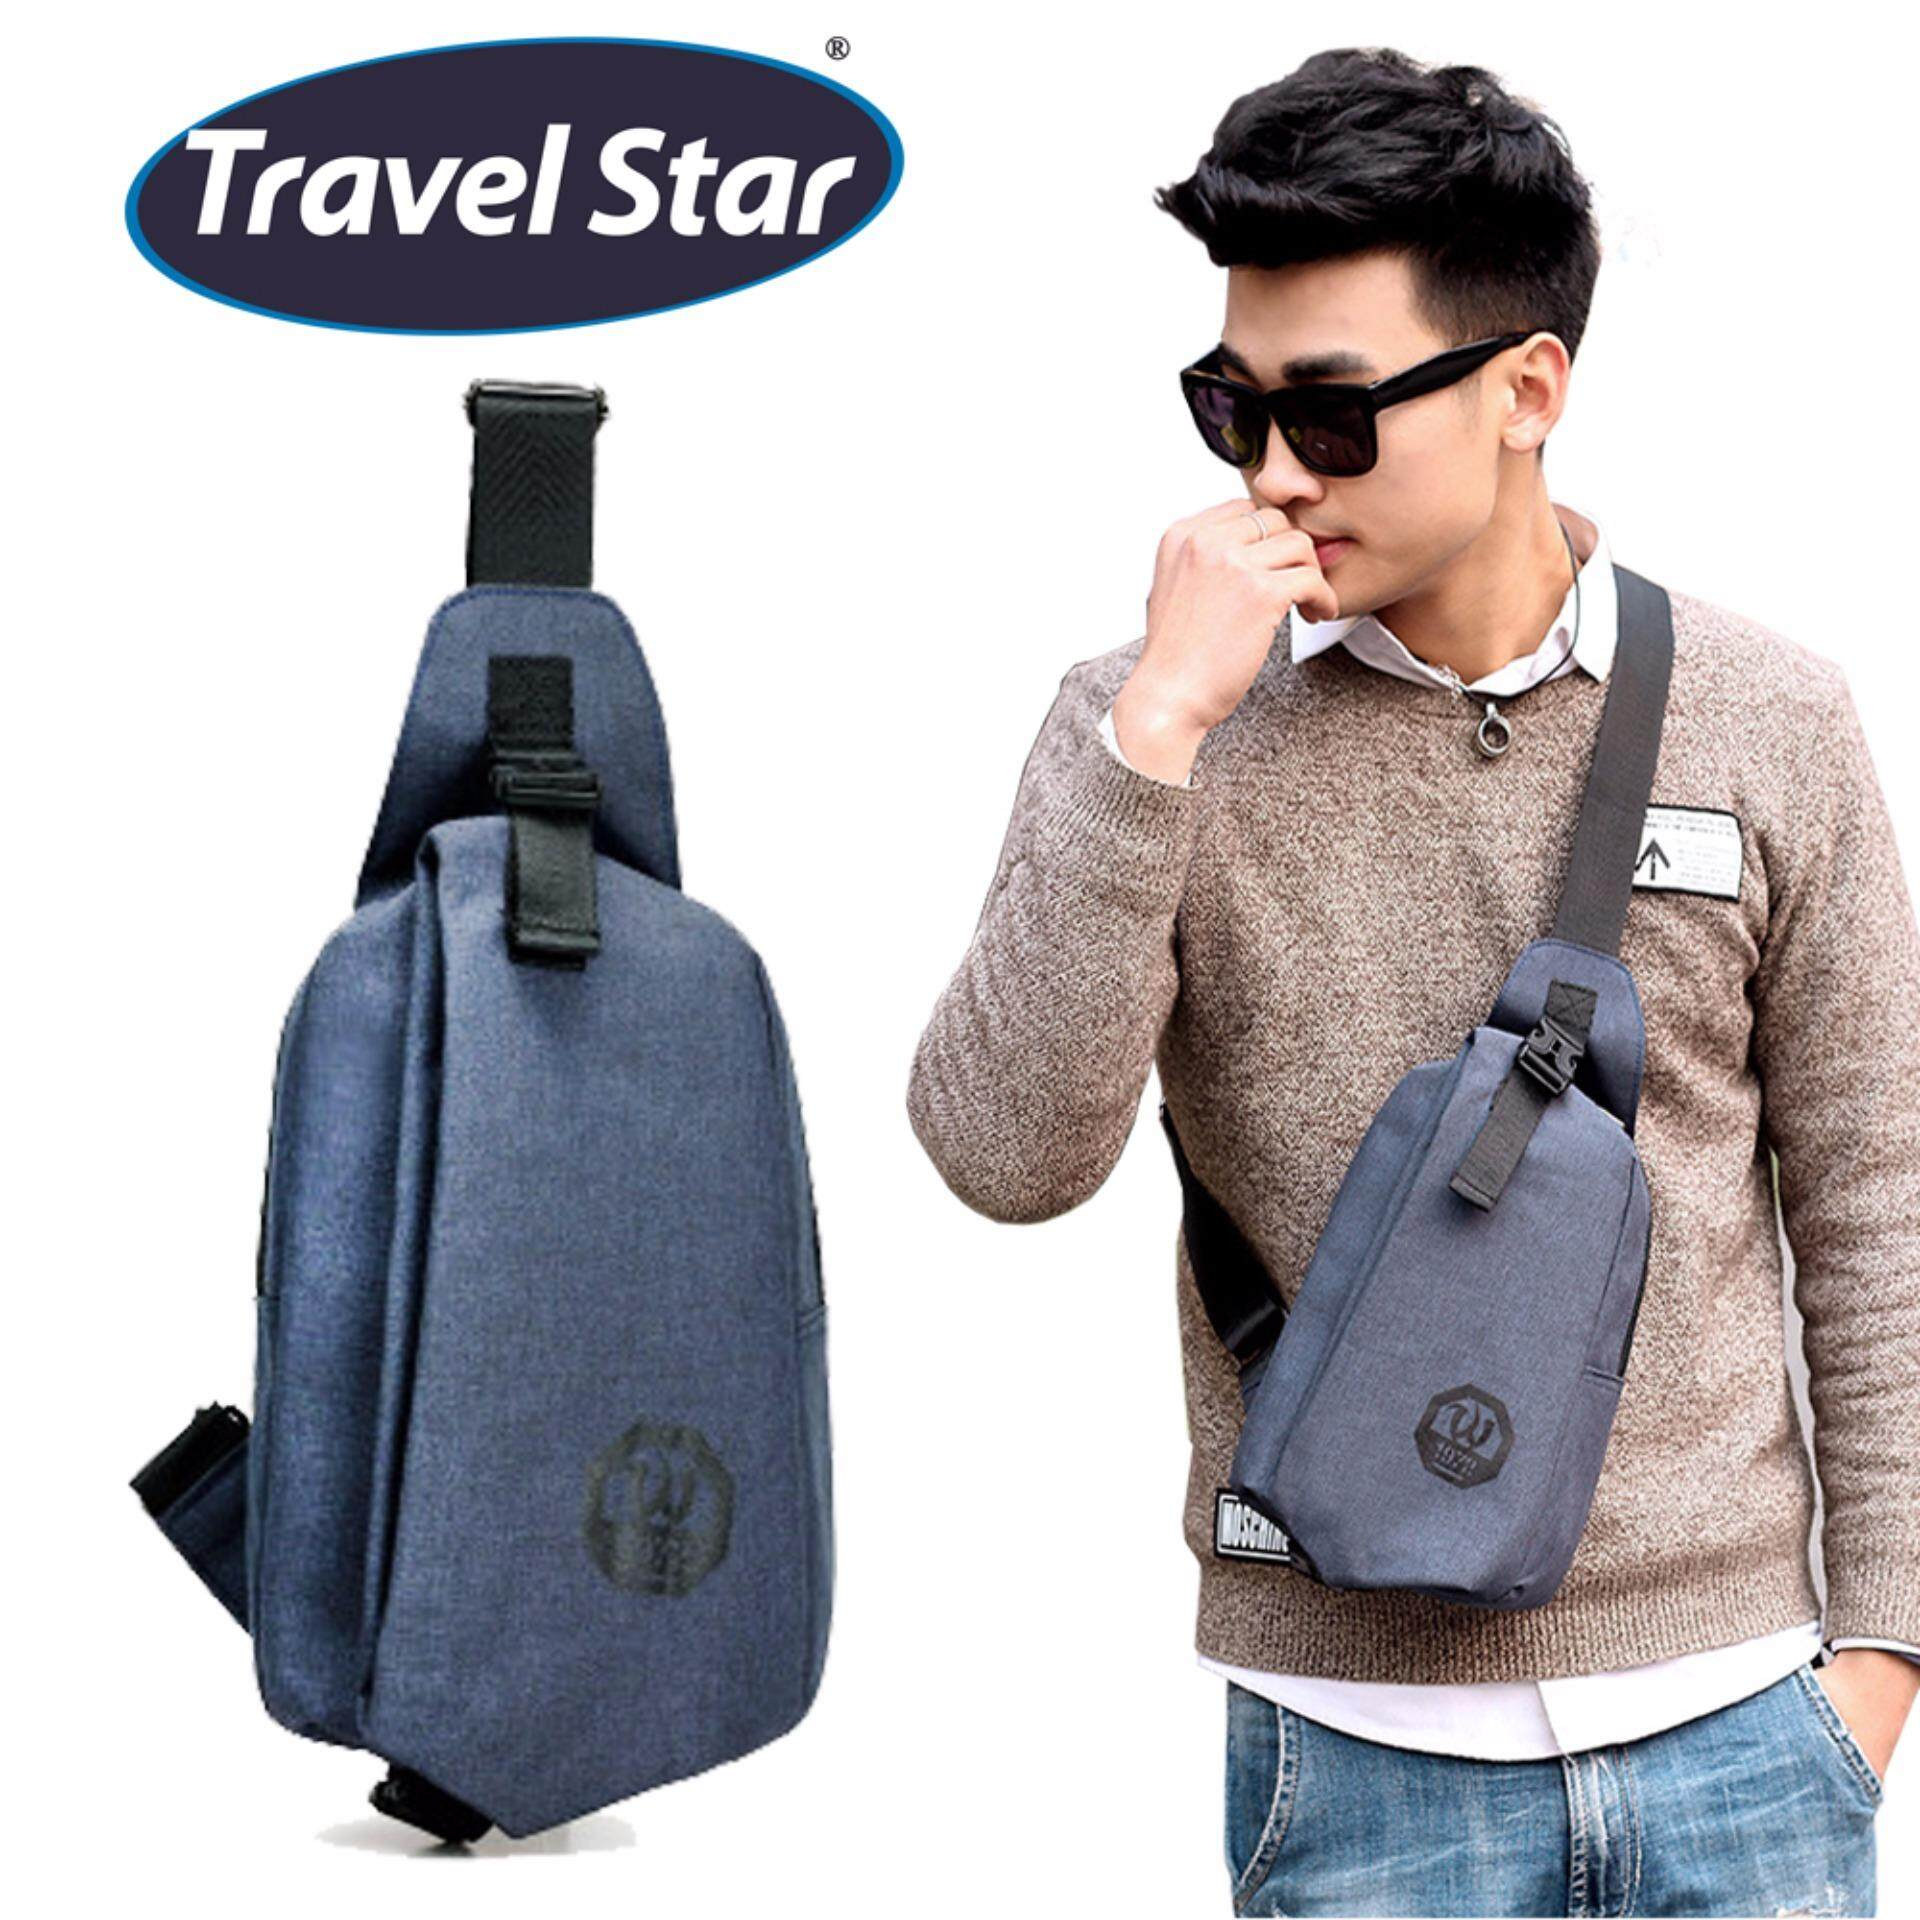 Travel Star 1972 Korean Style Premium Shoulder Bag With Earphone Cable Entry - Blue